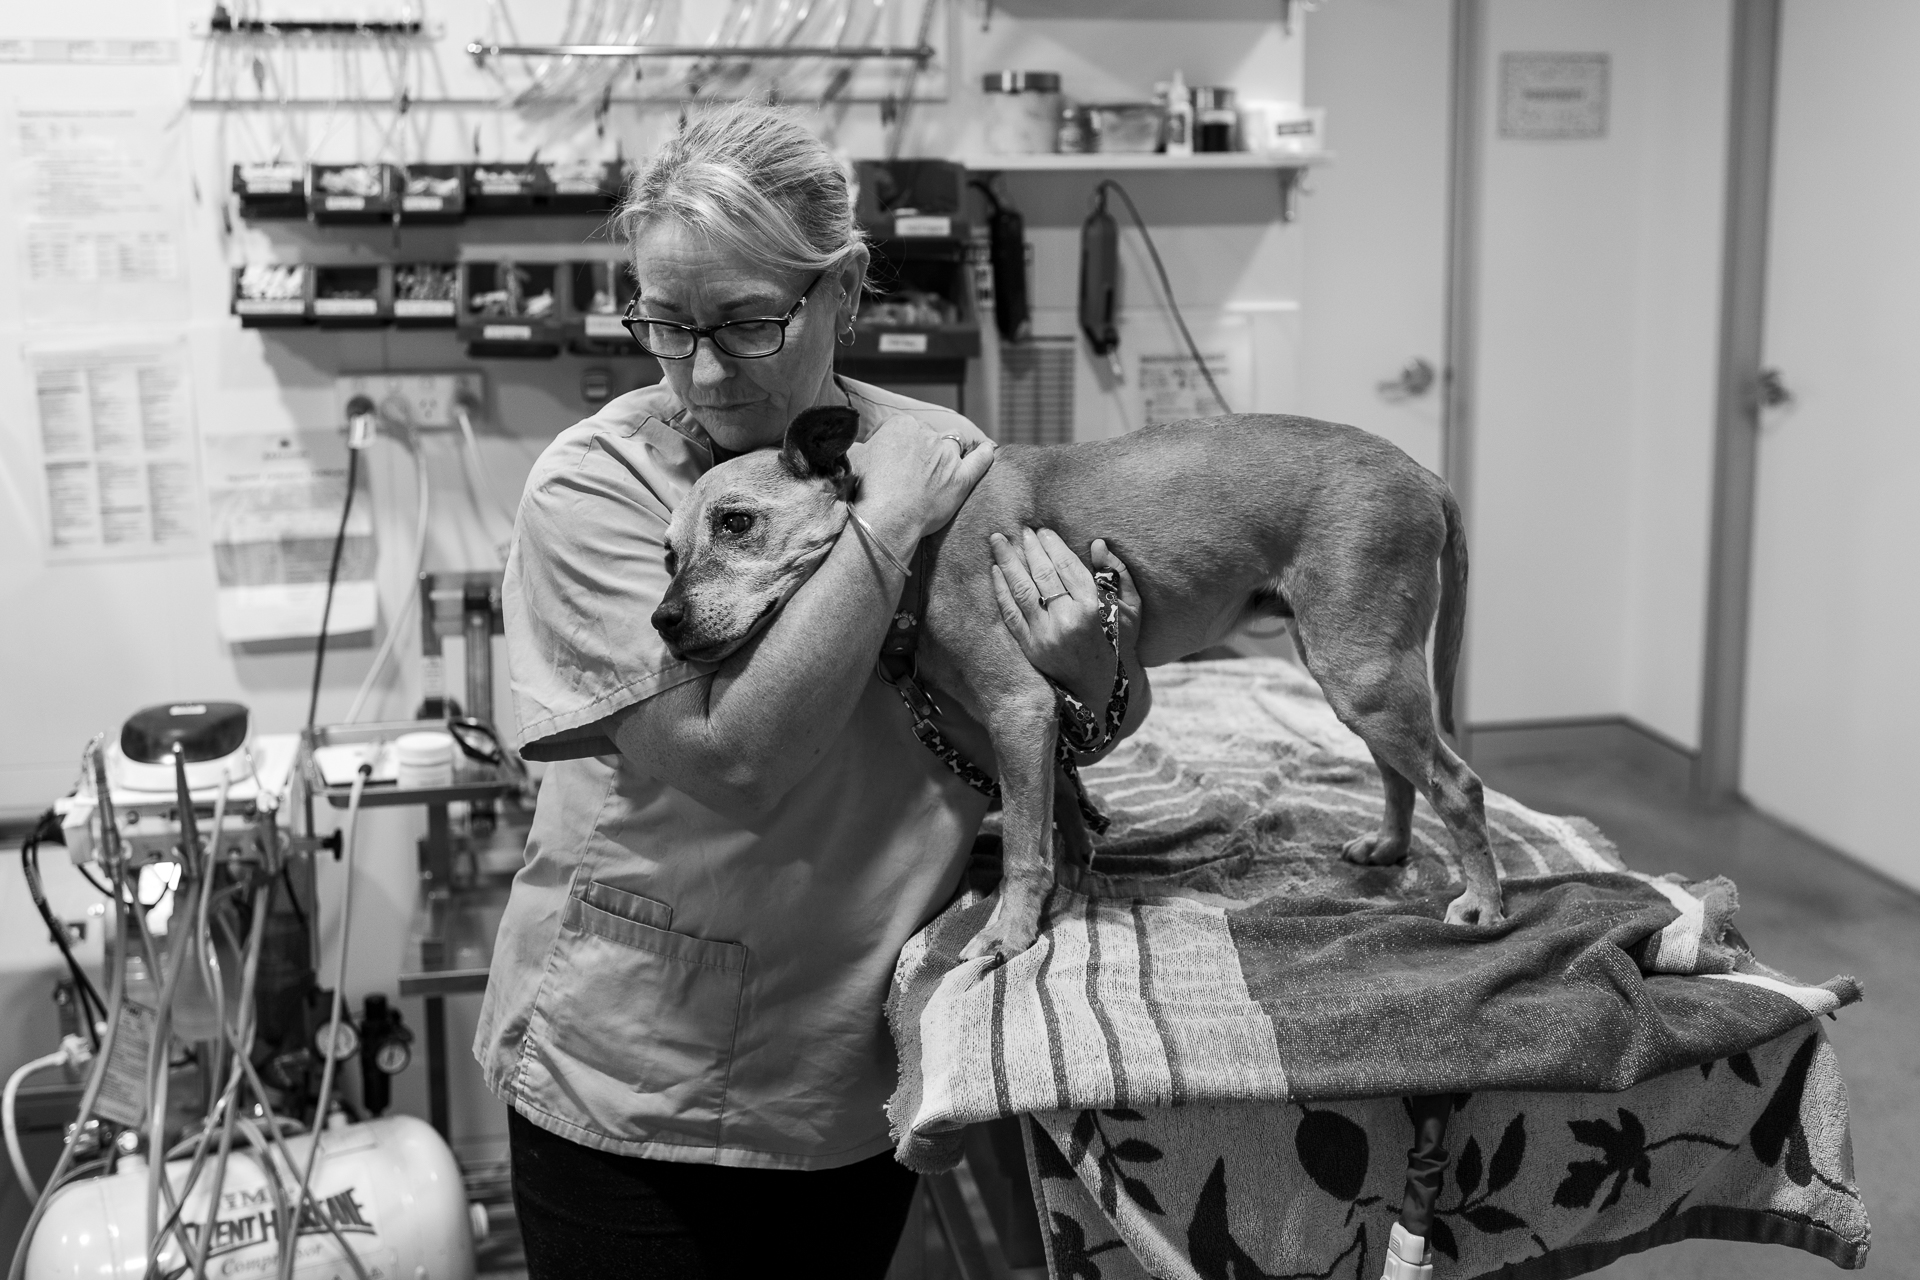 Nurse Maree Watt comforts Pheobe, a 15 year old who sadly is about to be euthanised.  22 March, 2018.